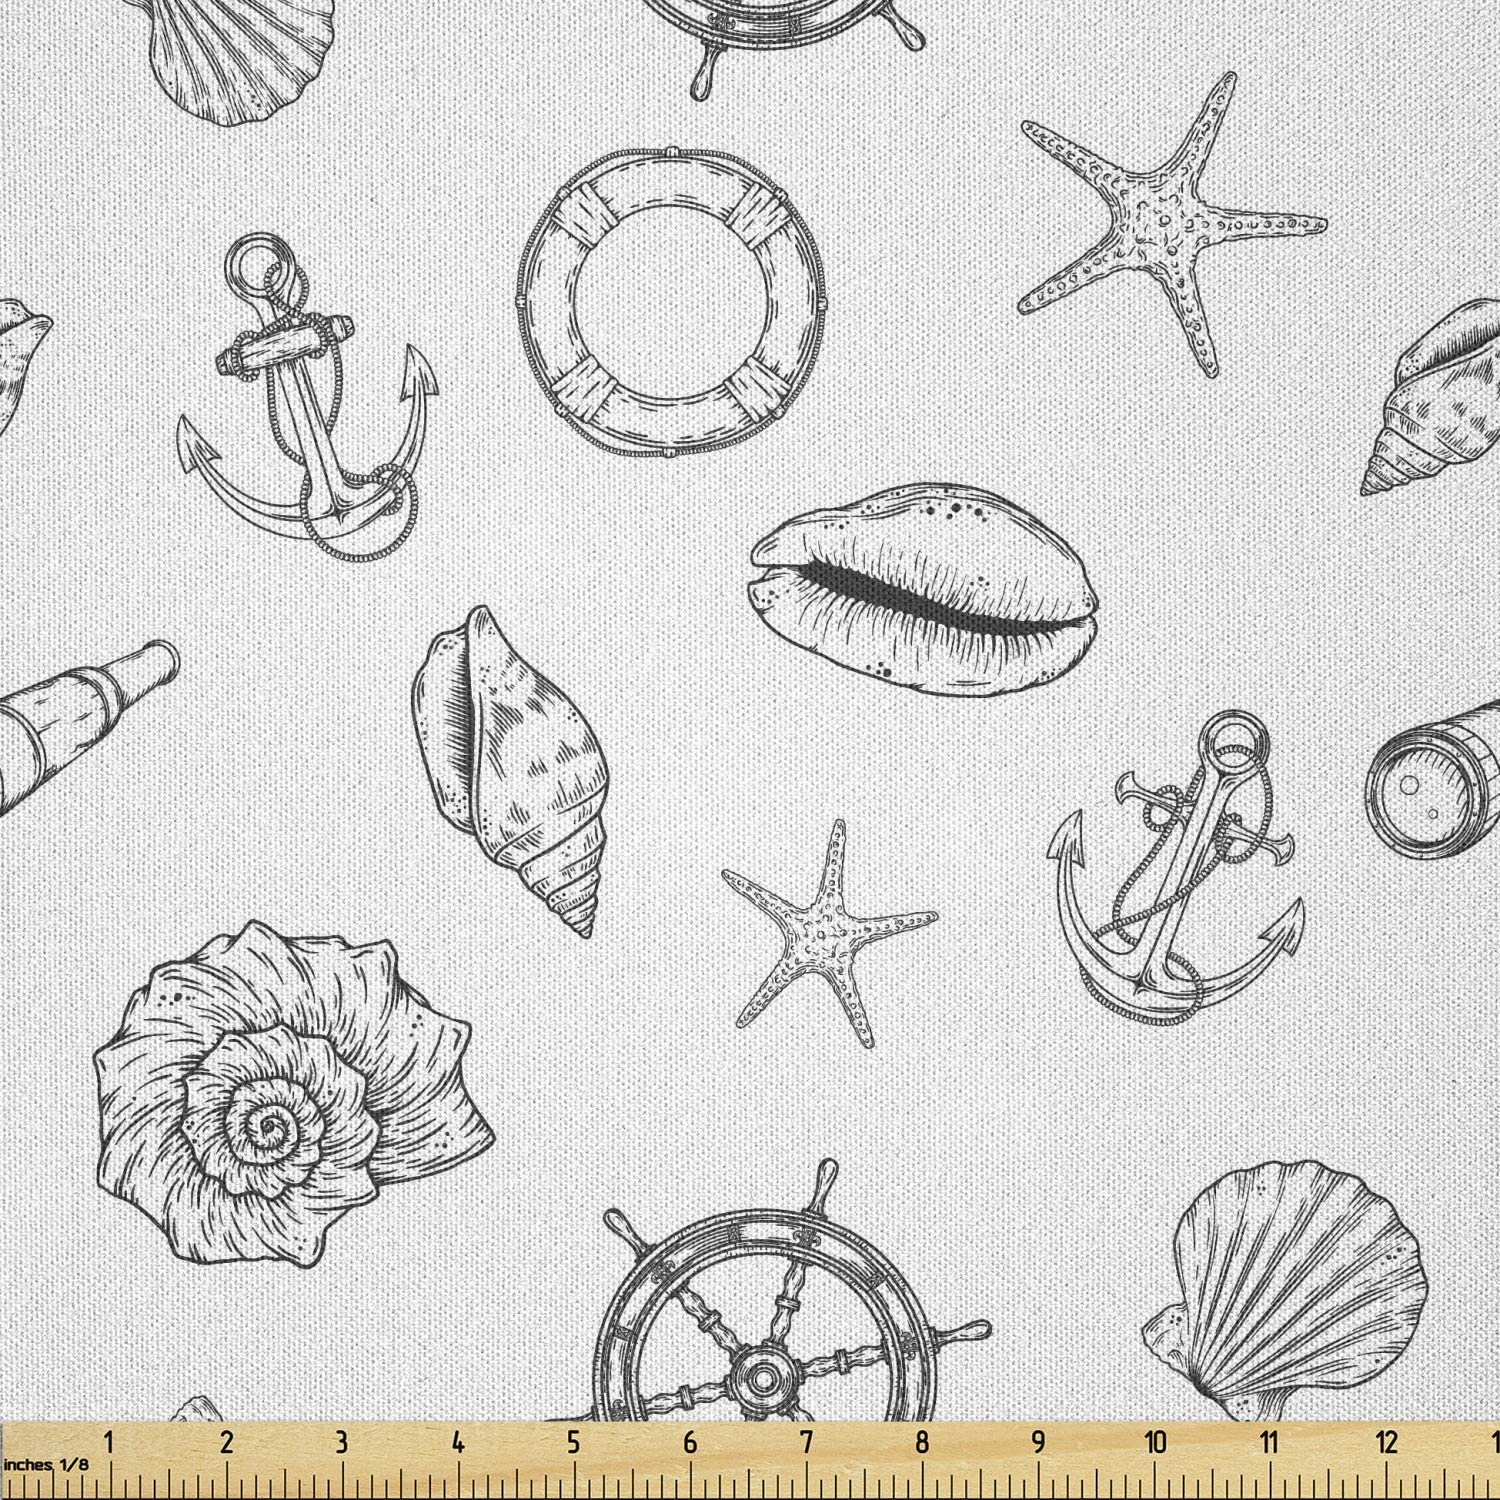 Ambesonne Surprise price Sea Shells Fabric by The Hand Monochrome Beauty products Drawn Yard N